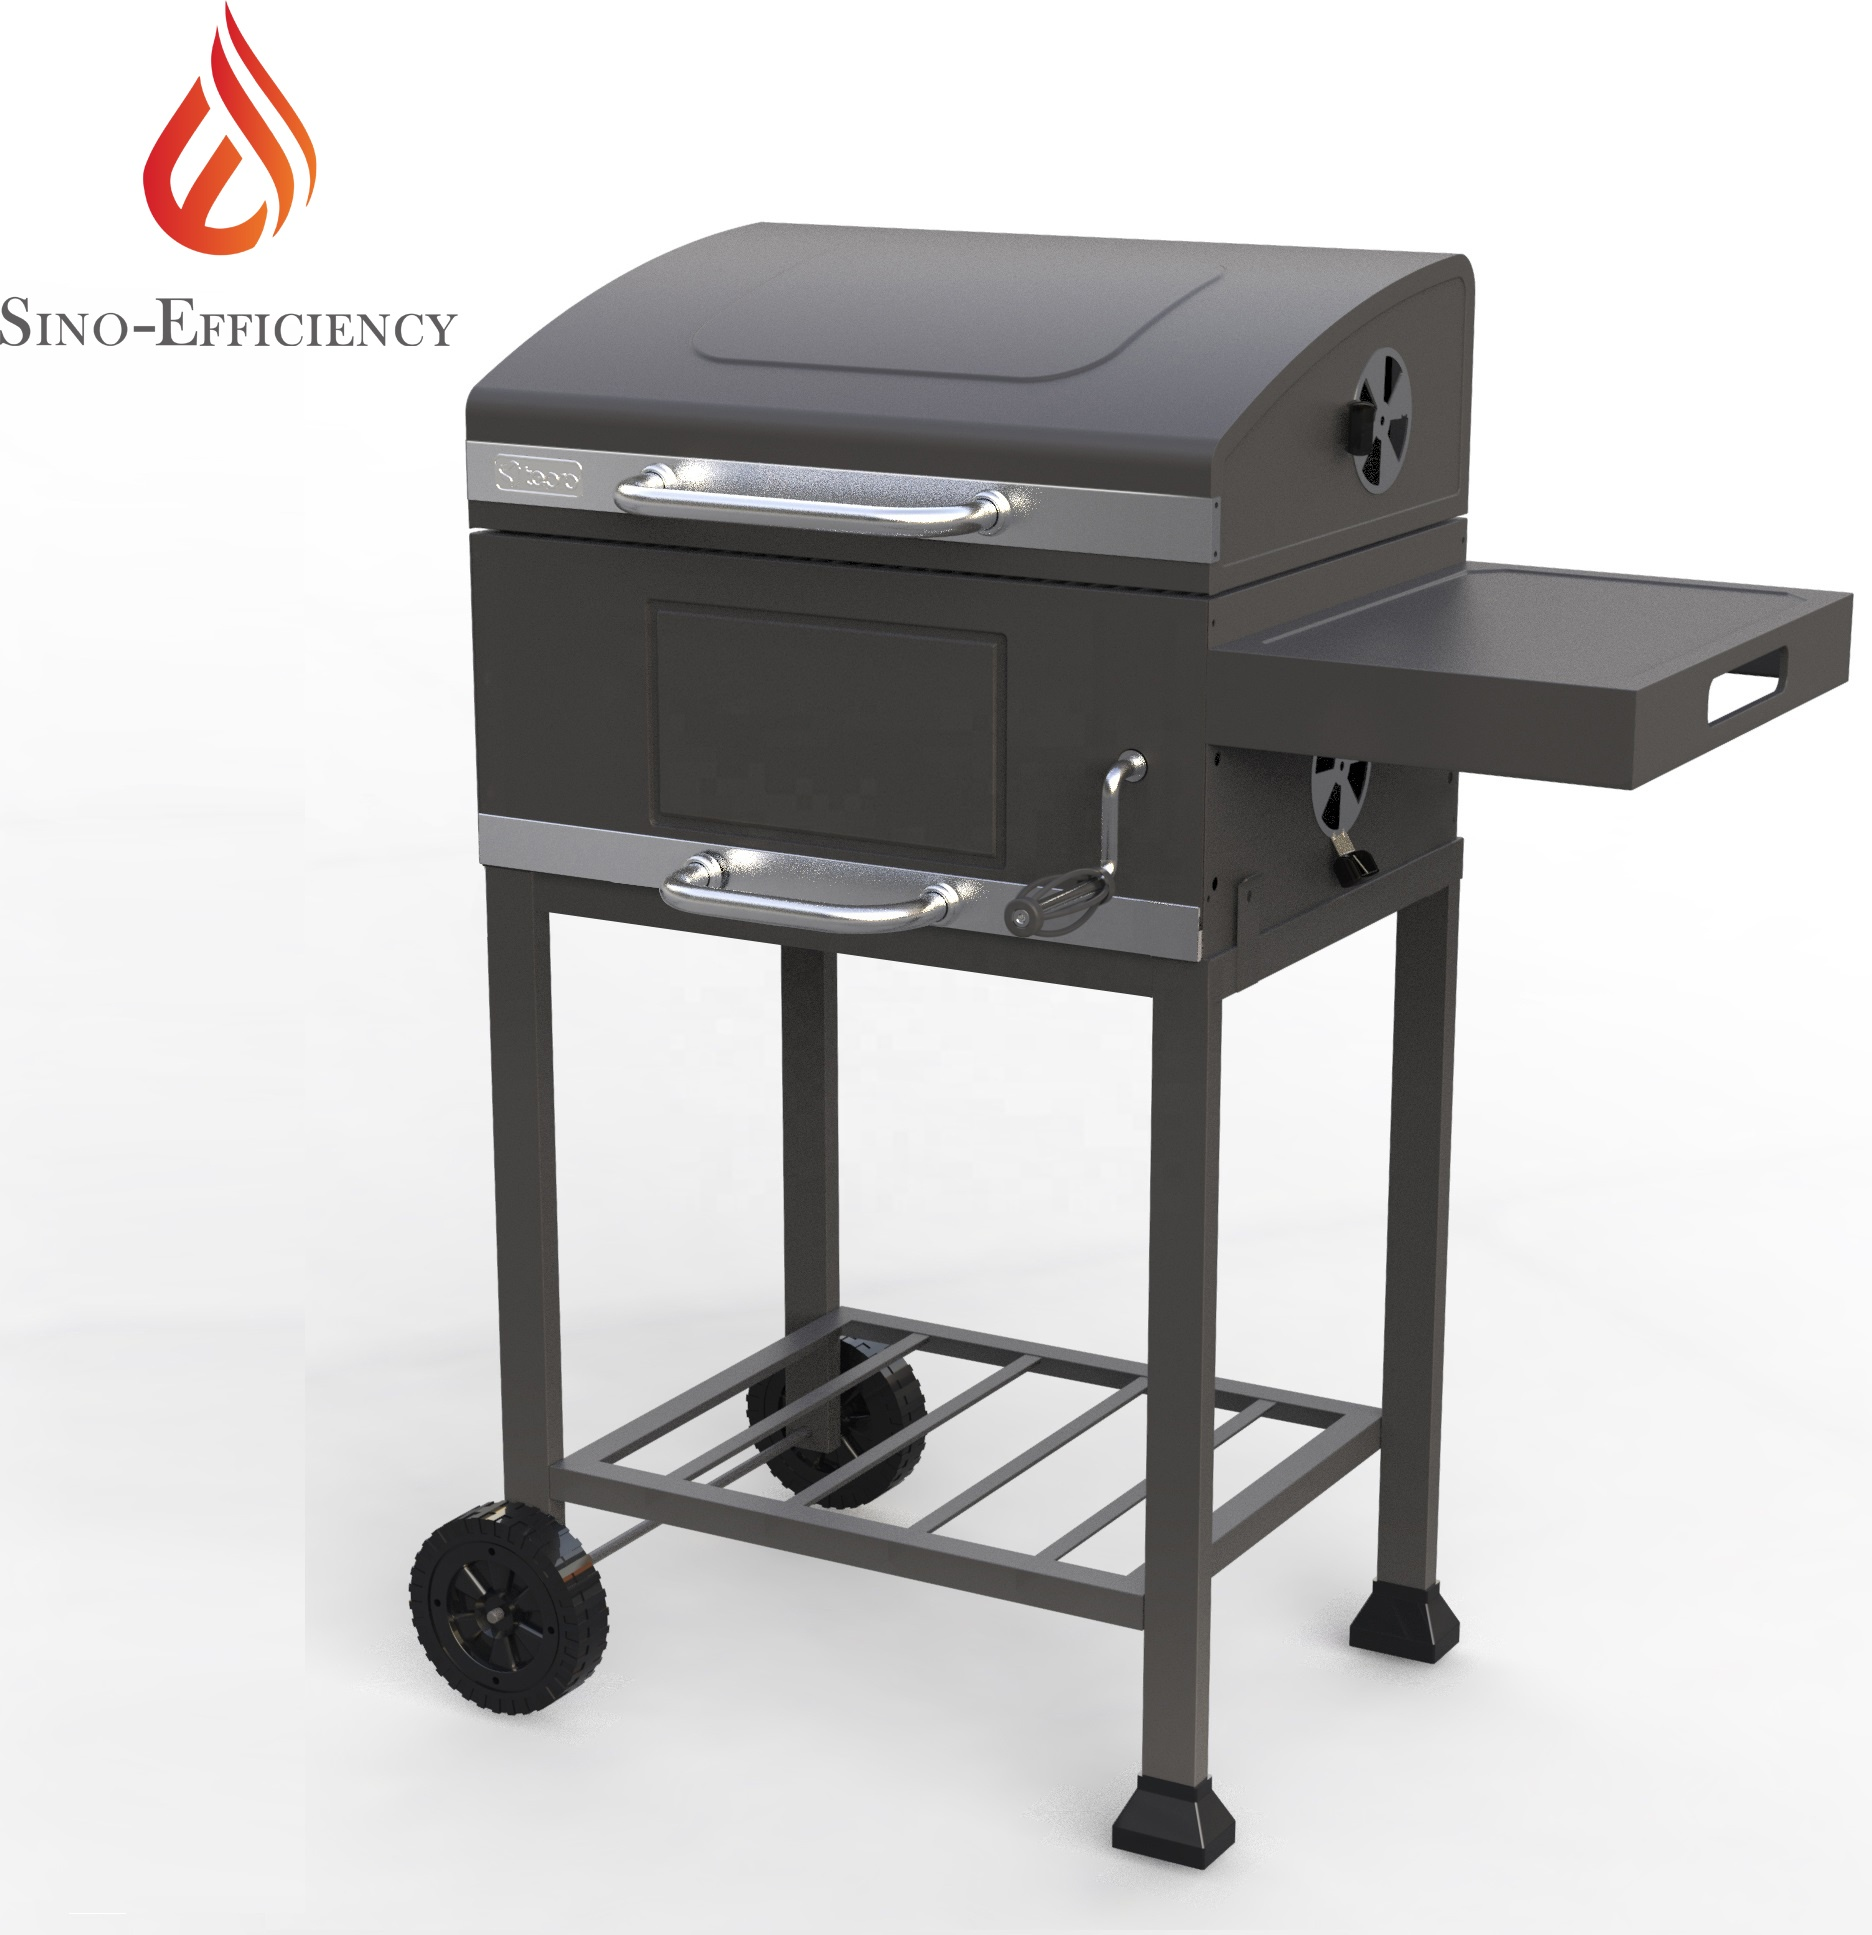 Charcoal Grill Bbq Smoker Grill Outdoor Barbecue Grill ...